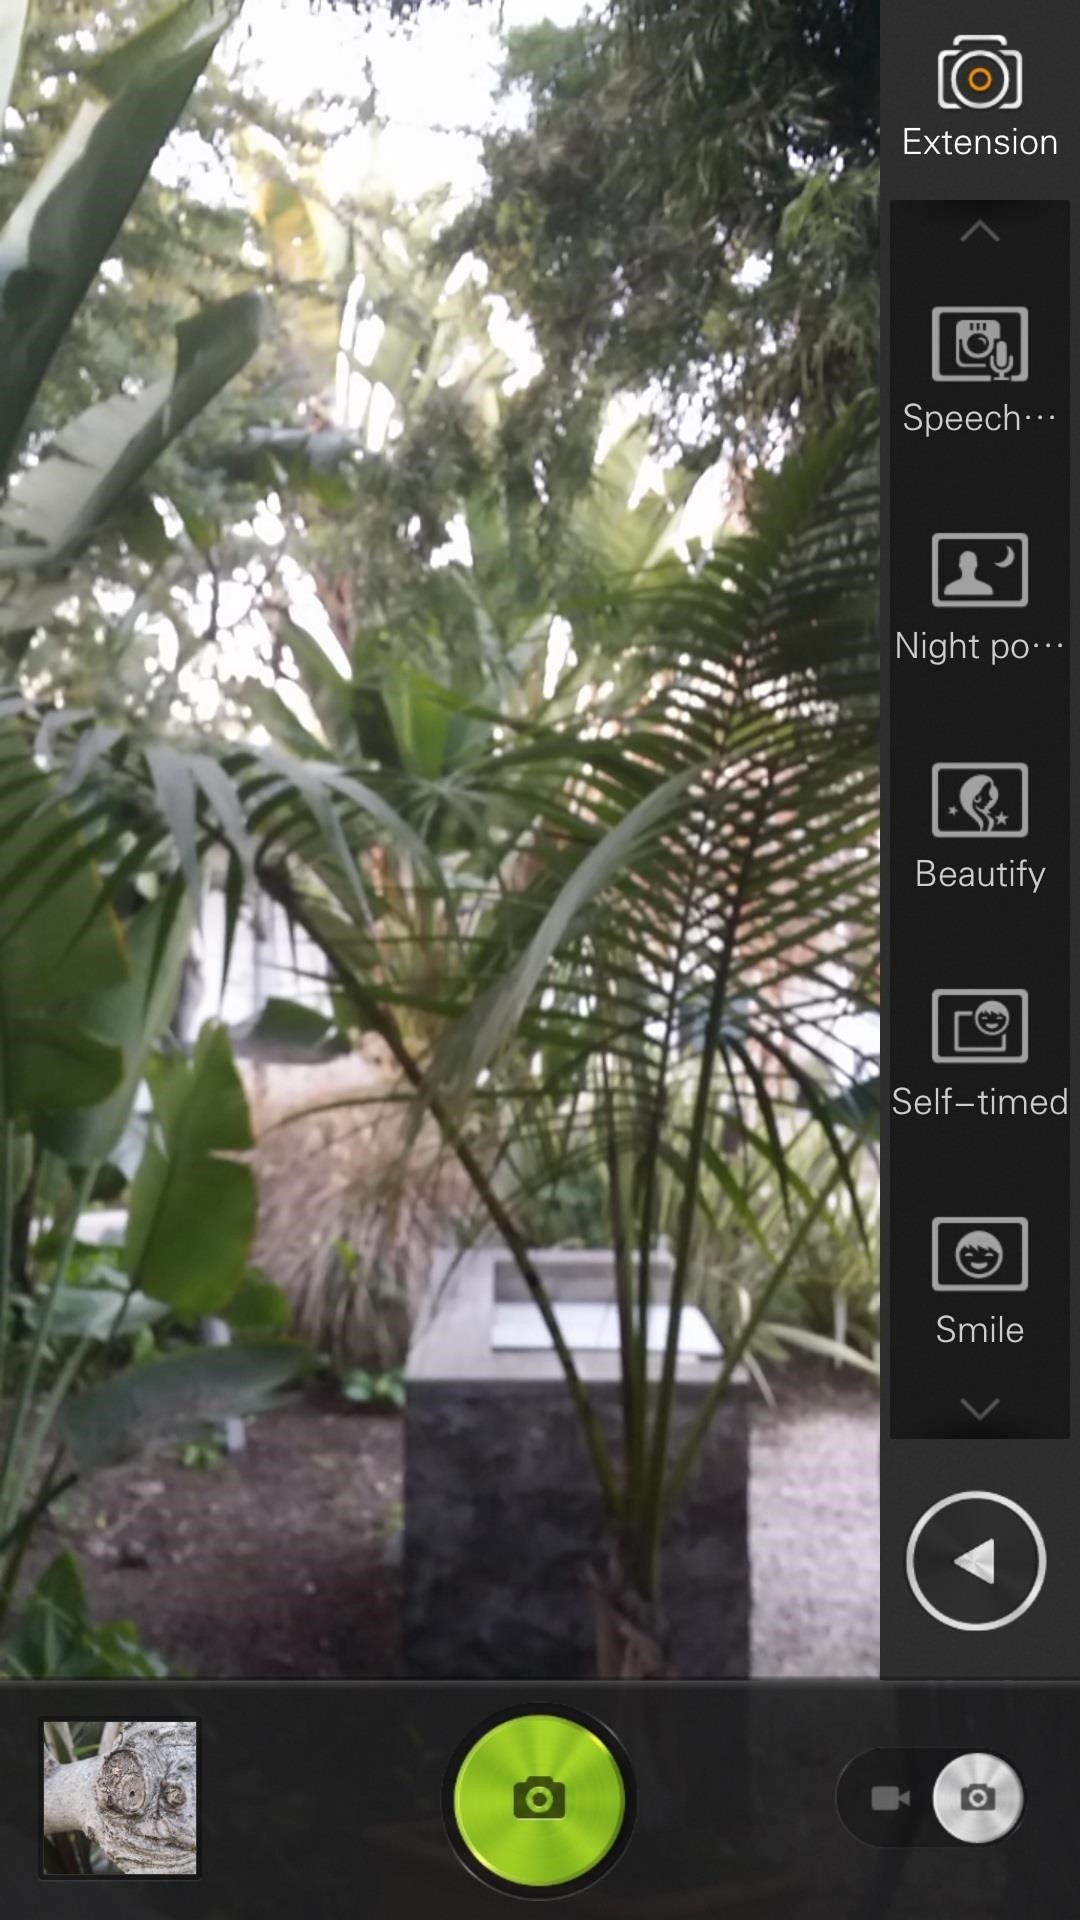 How to Get Lenovo's Exclusive Super Camera Apps on Your Galaxy Note 3